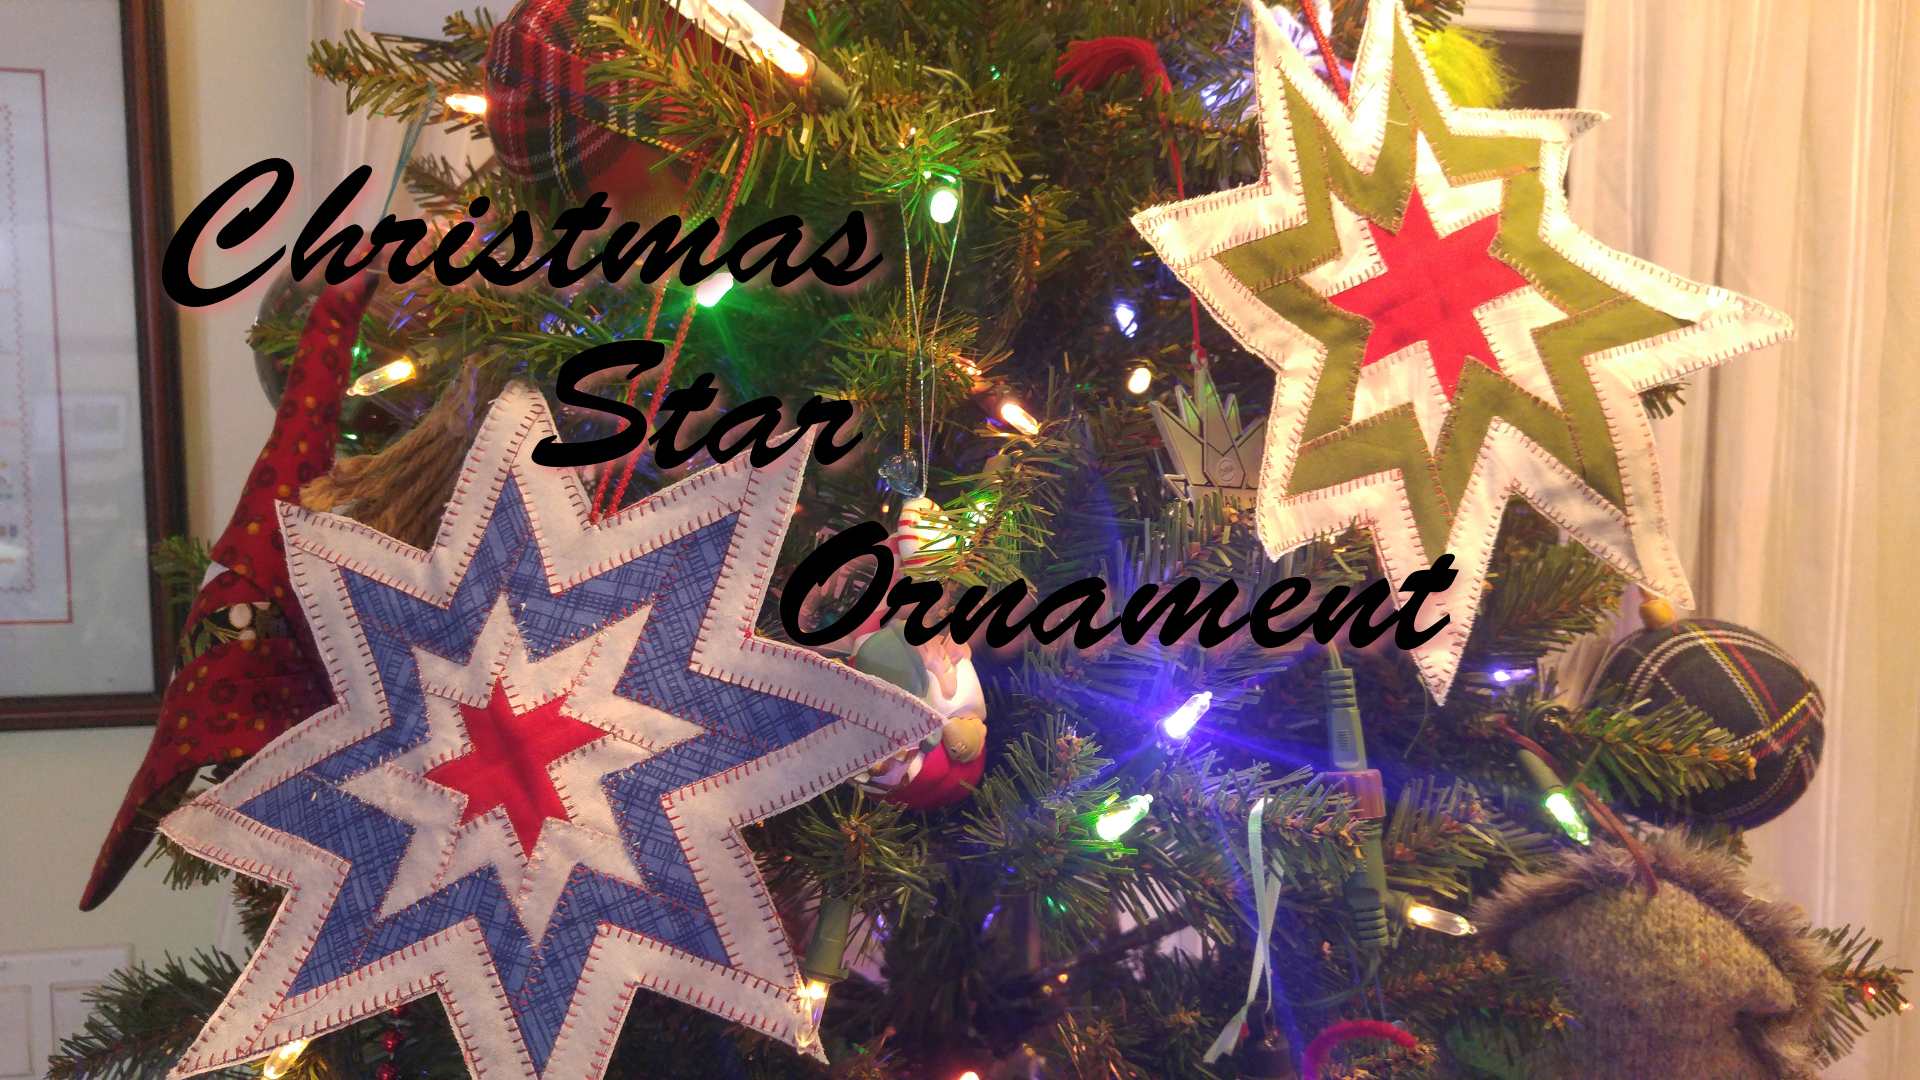 New details of the Christmas star shopping 12/27/2010 31